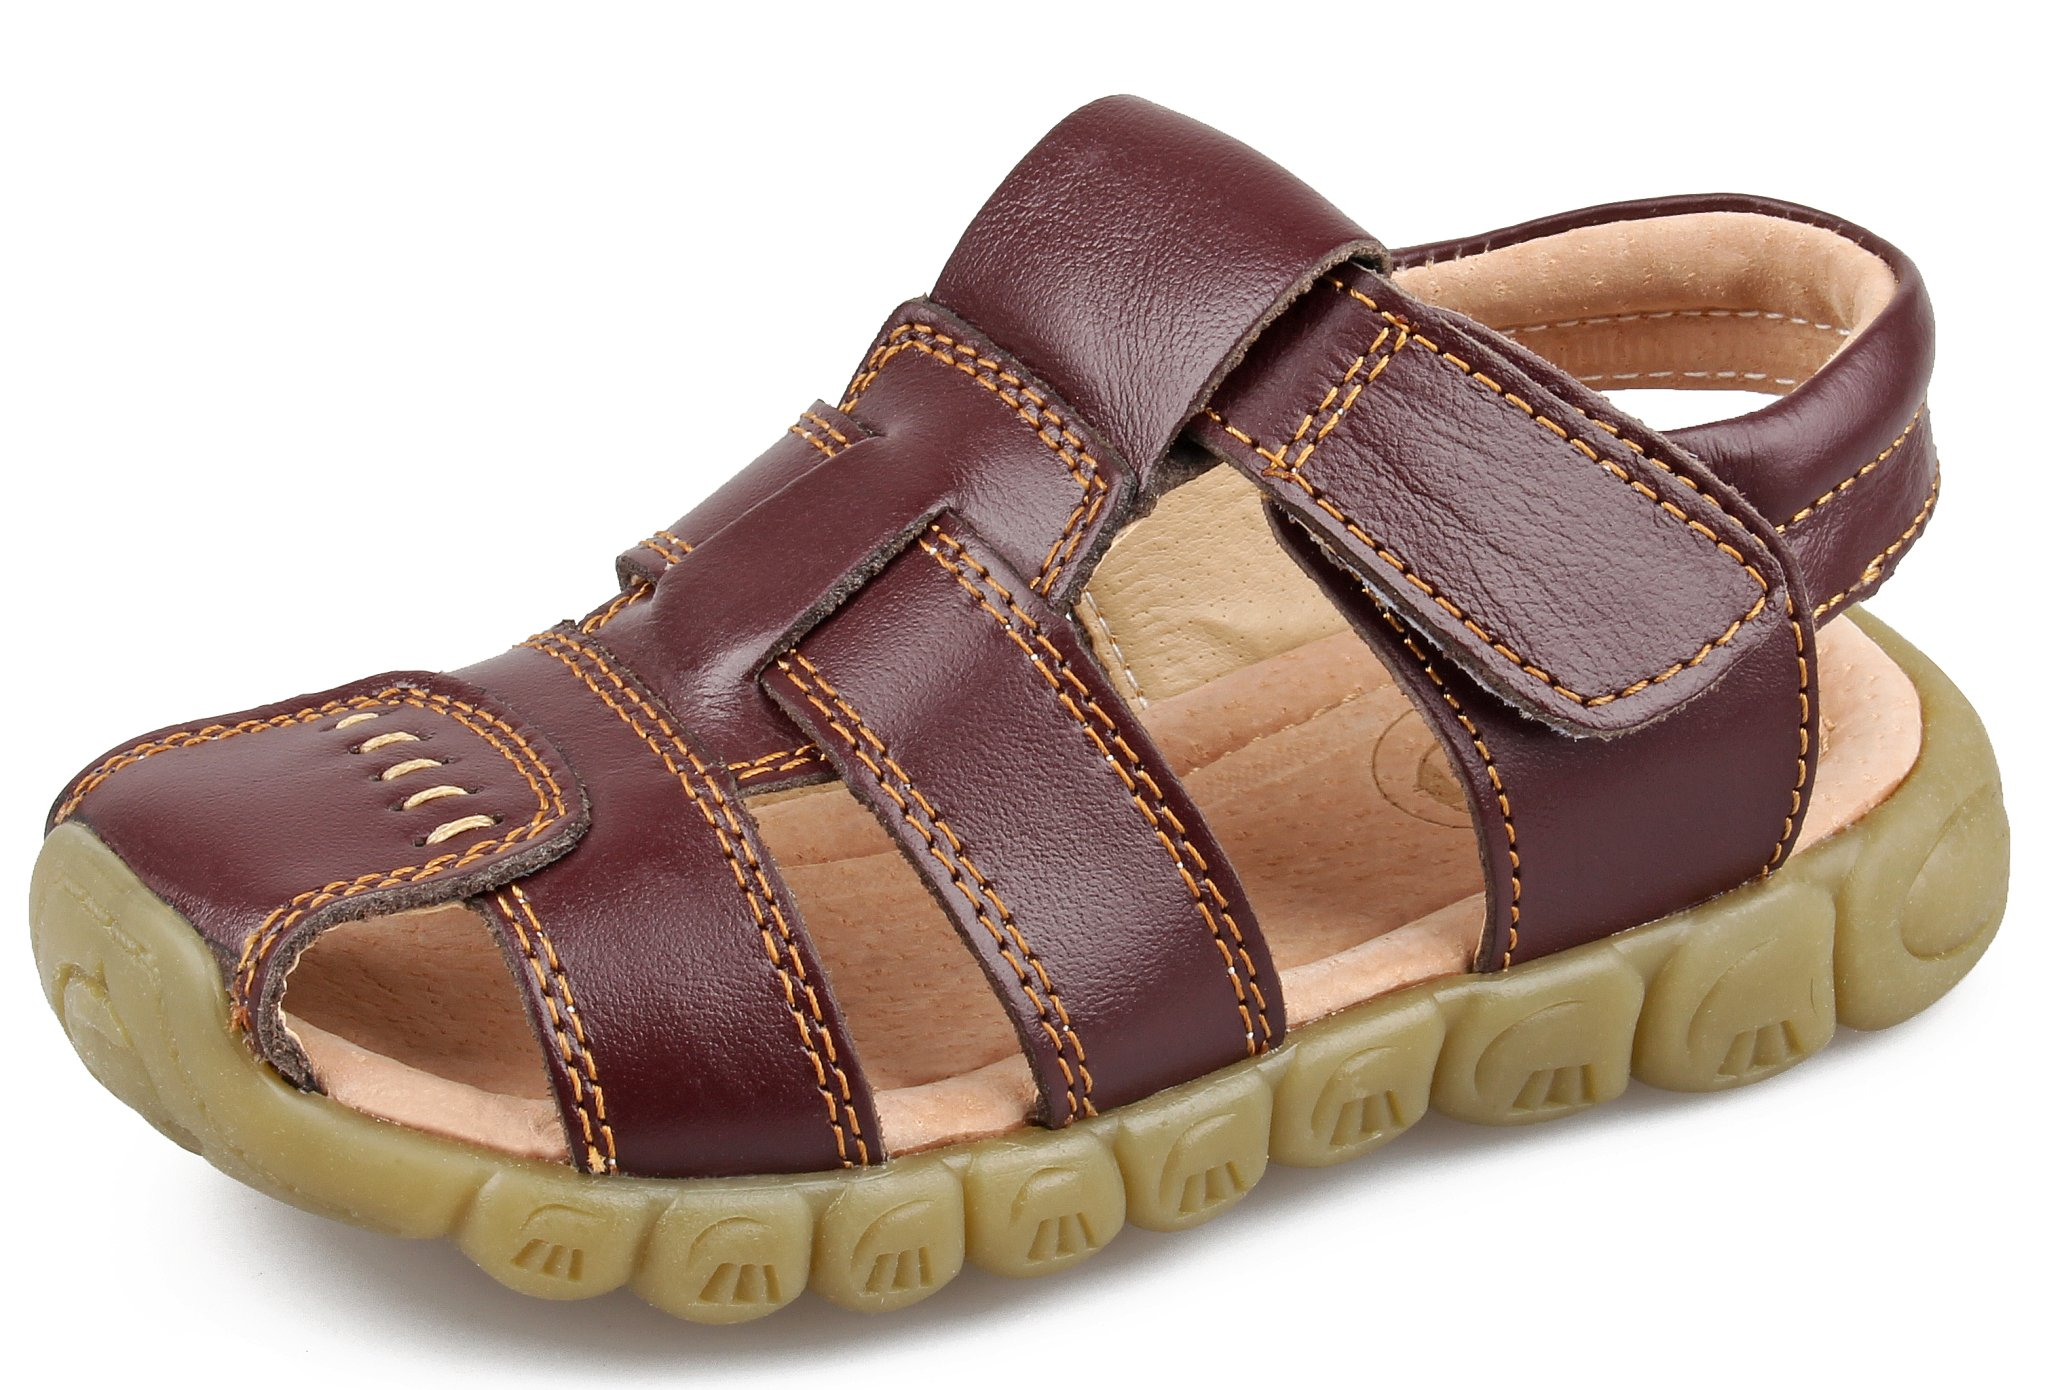 SKOEX Boy's Leather Closed Toe Outdoor Sport Sandal (Toddler/Little Kid) US Size 6.5M,Brown by SKOEX